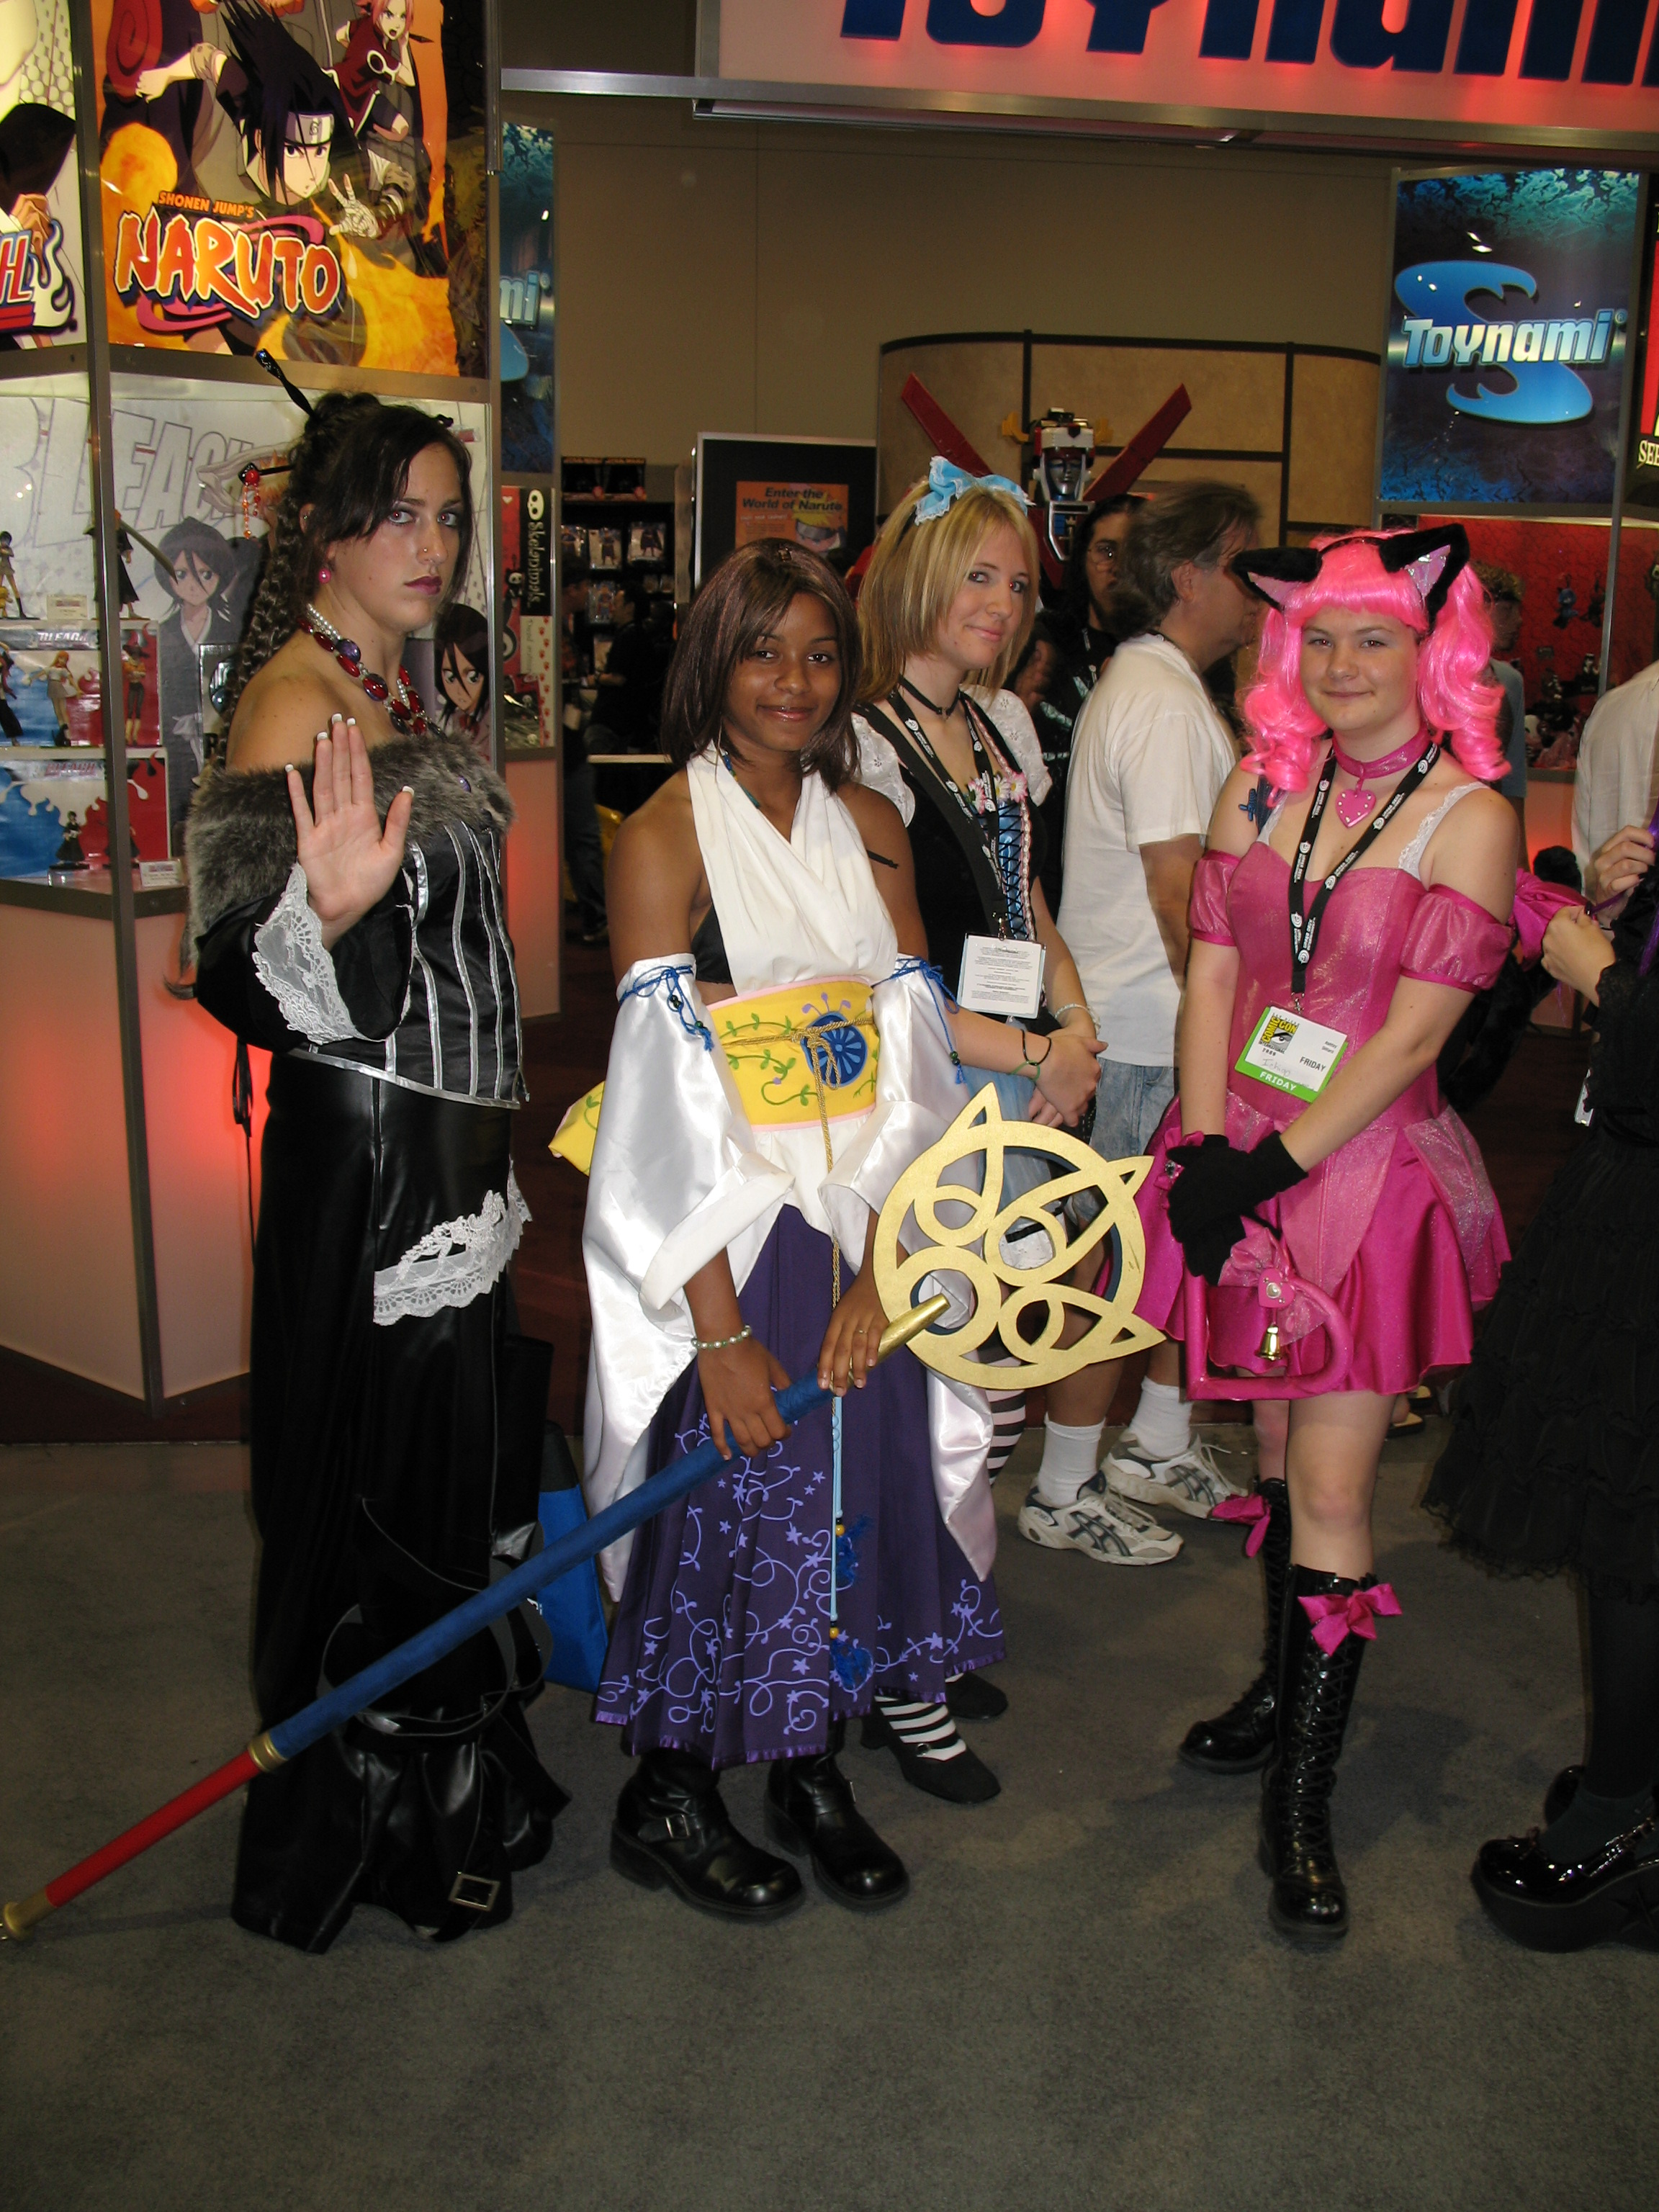 Final Fantasy X cosplay, and a catgirl